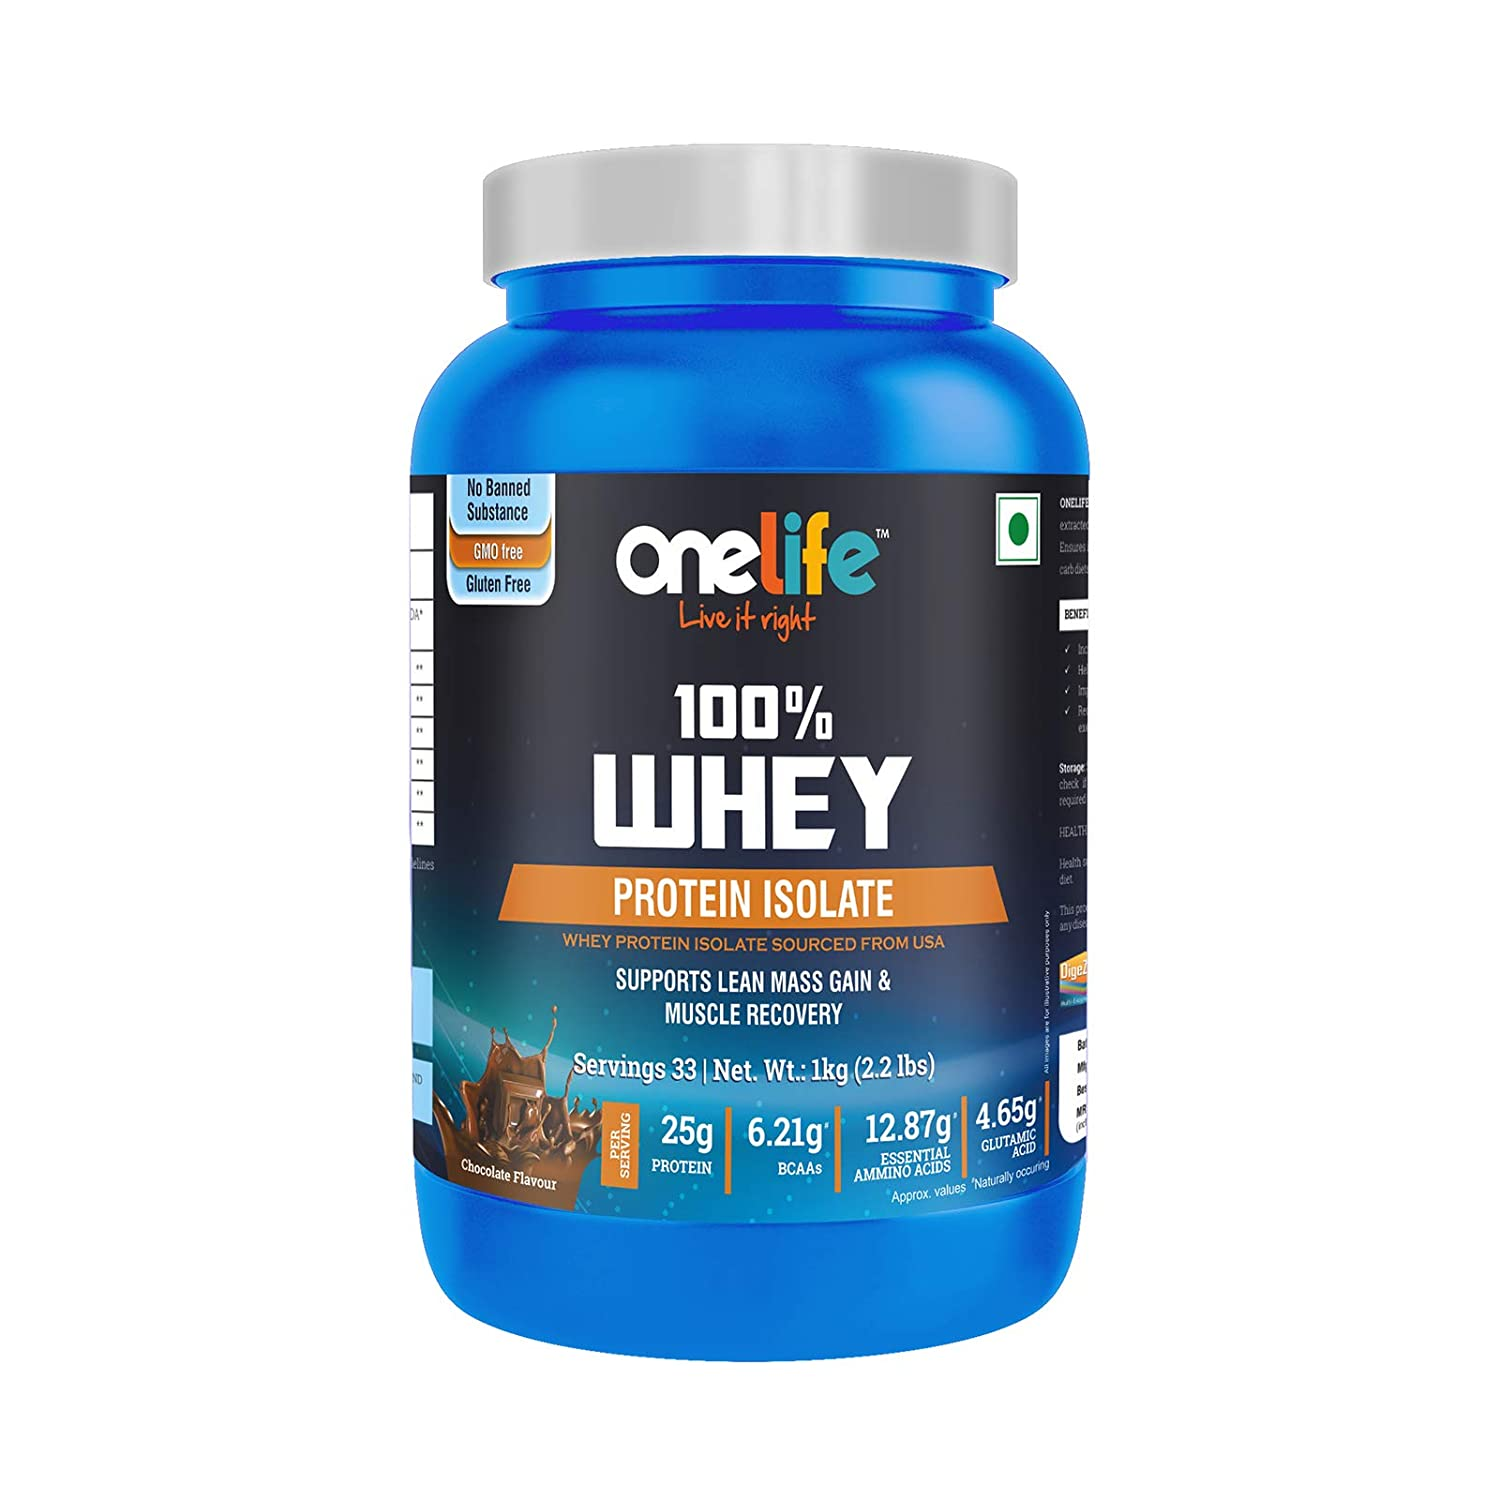 Onelife Whey Protein Isolate with BCAA 6.21gm , Amino Acid 12.87gm ,Glutamine 4.65gm, Supports Lean Mass Gain & Muscle Recovery - 1kg Chocolate Flavor